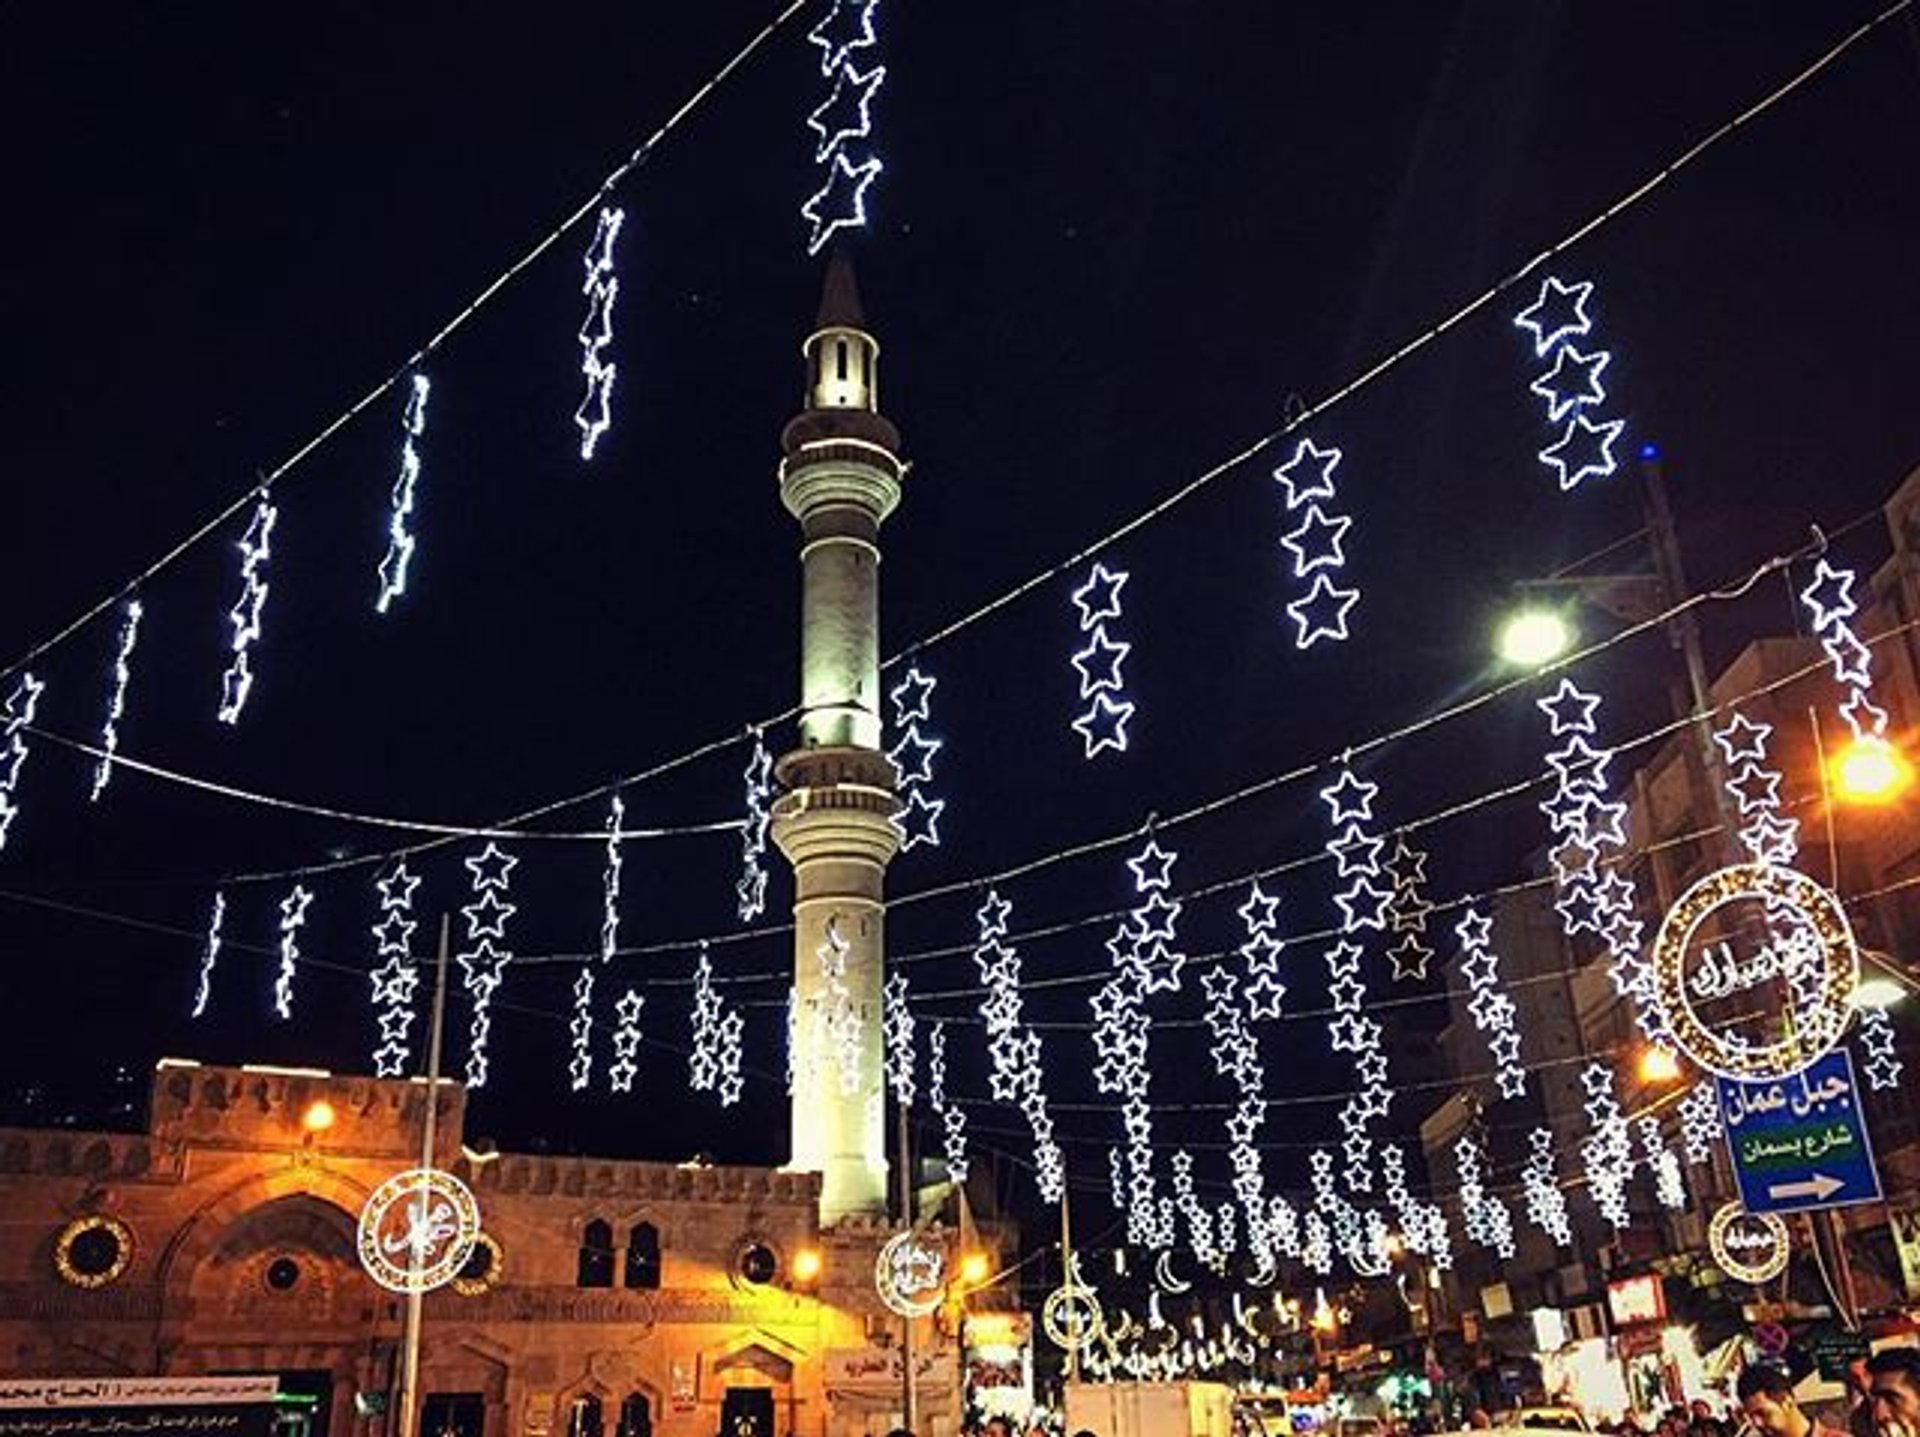 Eid al-Fitr or the End of Ramadan in Jordan 2020 - Best Time